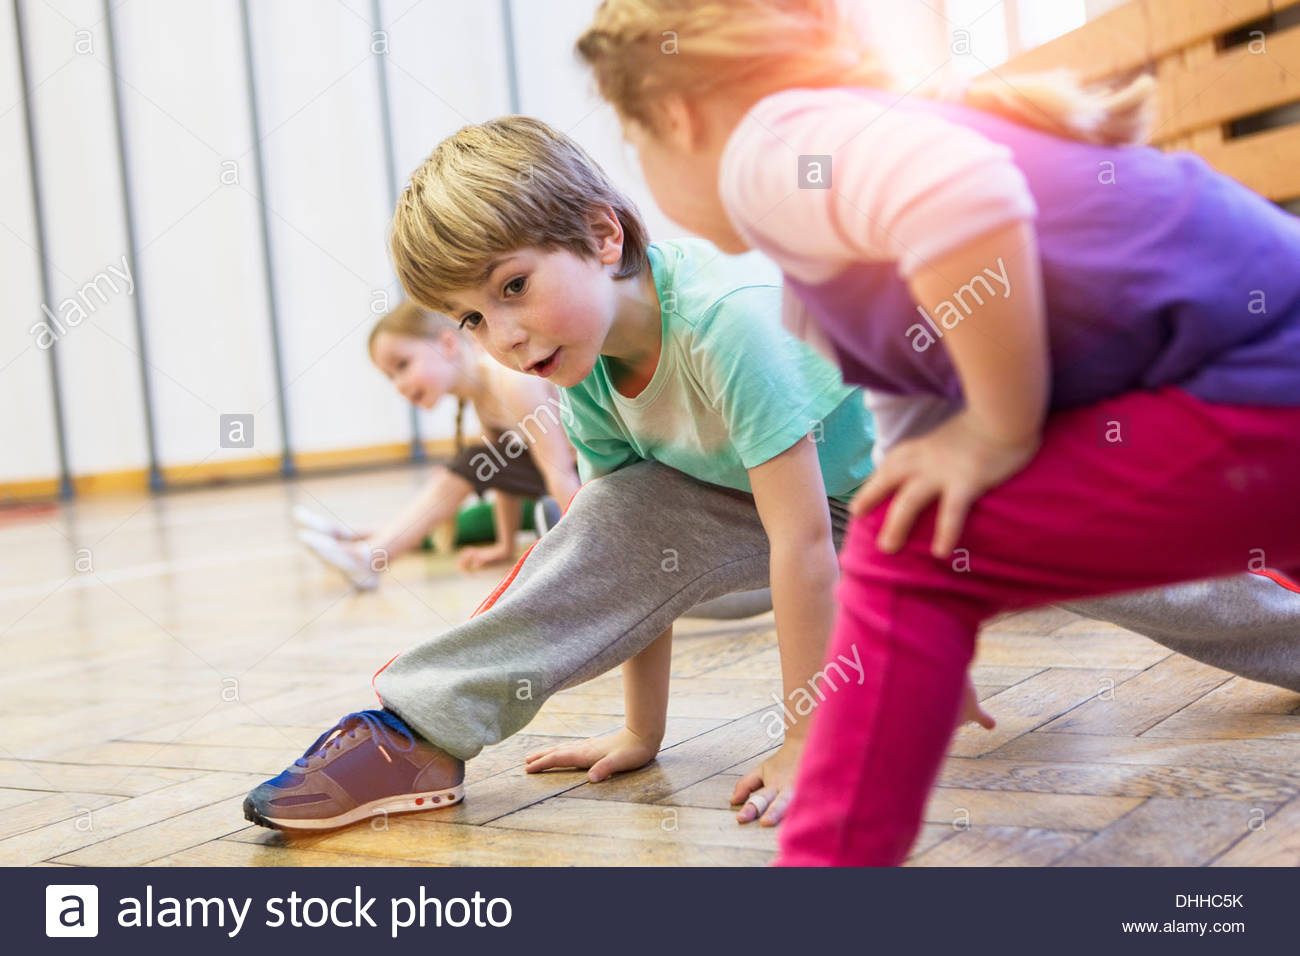 Children stretching, legs bent, leaning forwards - Stock Image